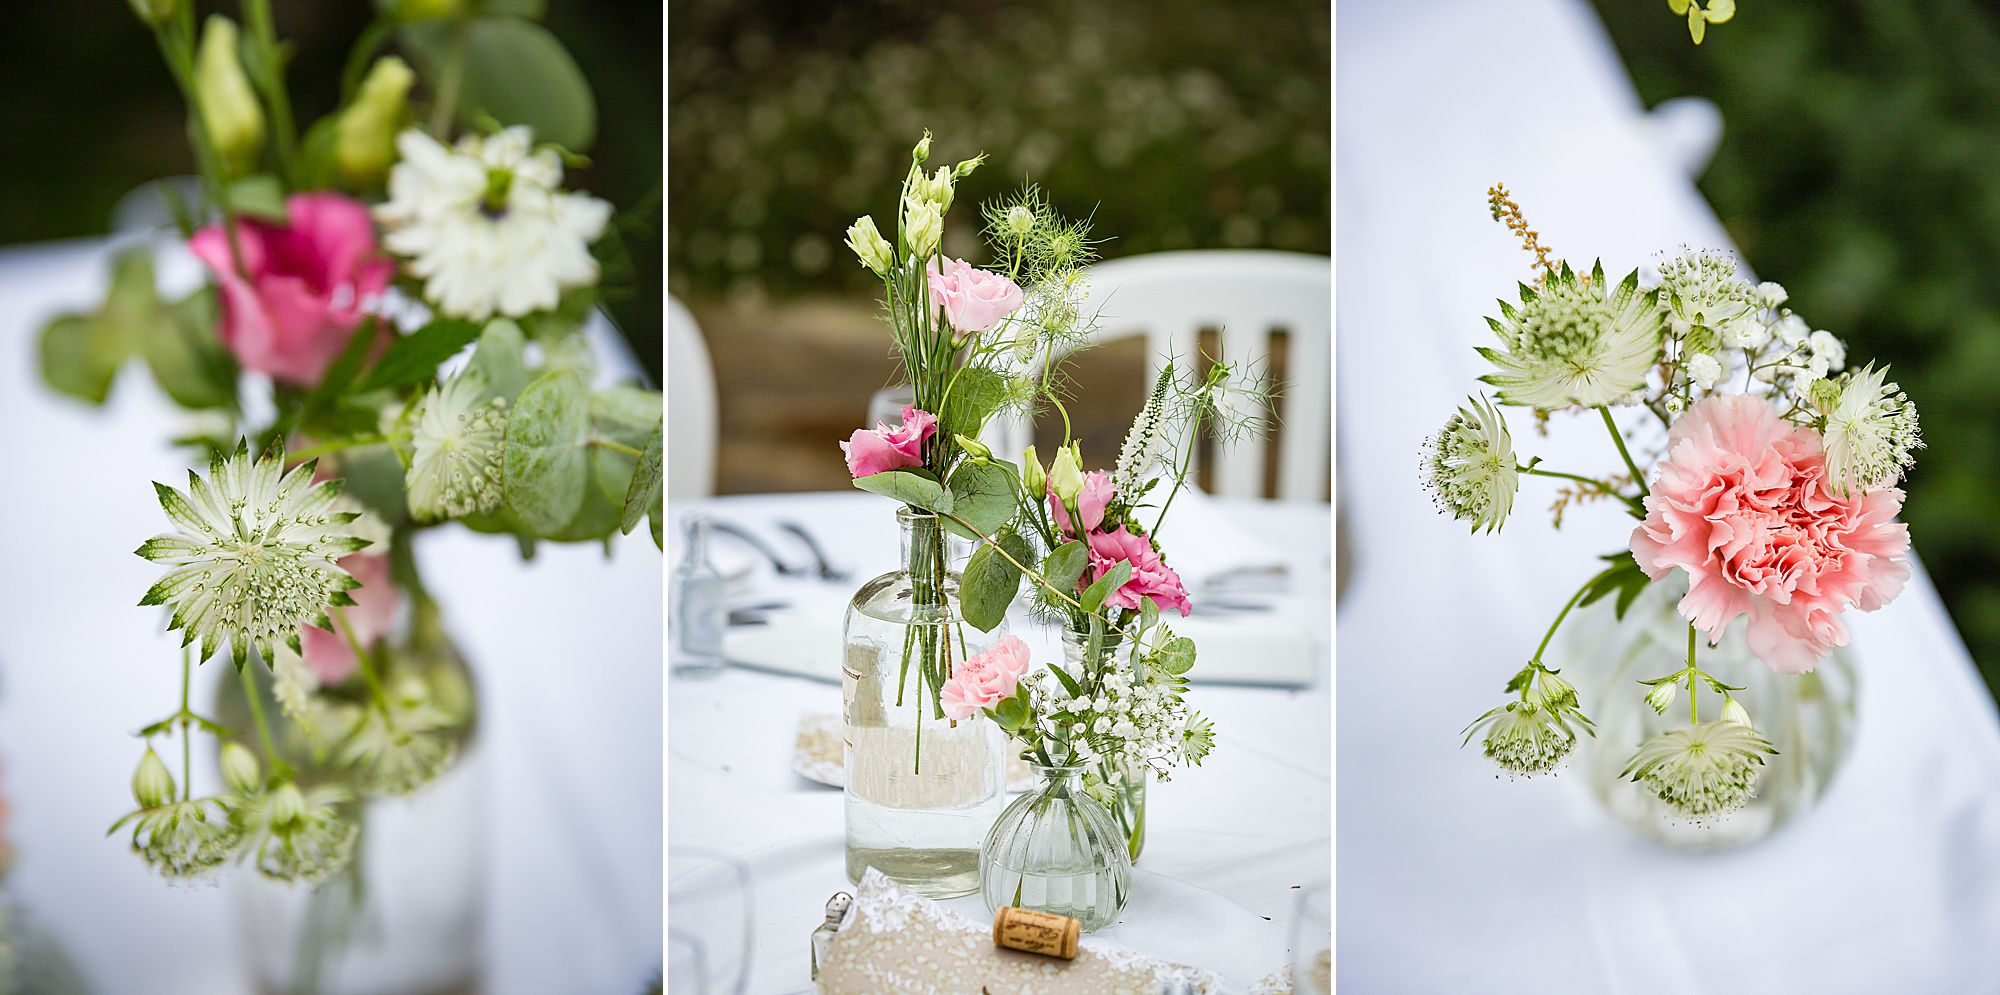 Domaine de la Grangette wedding flowers